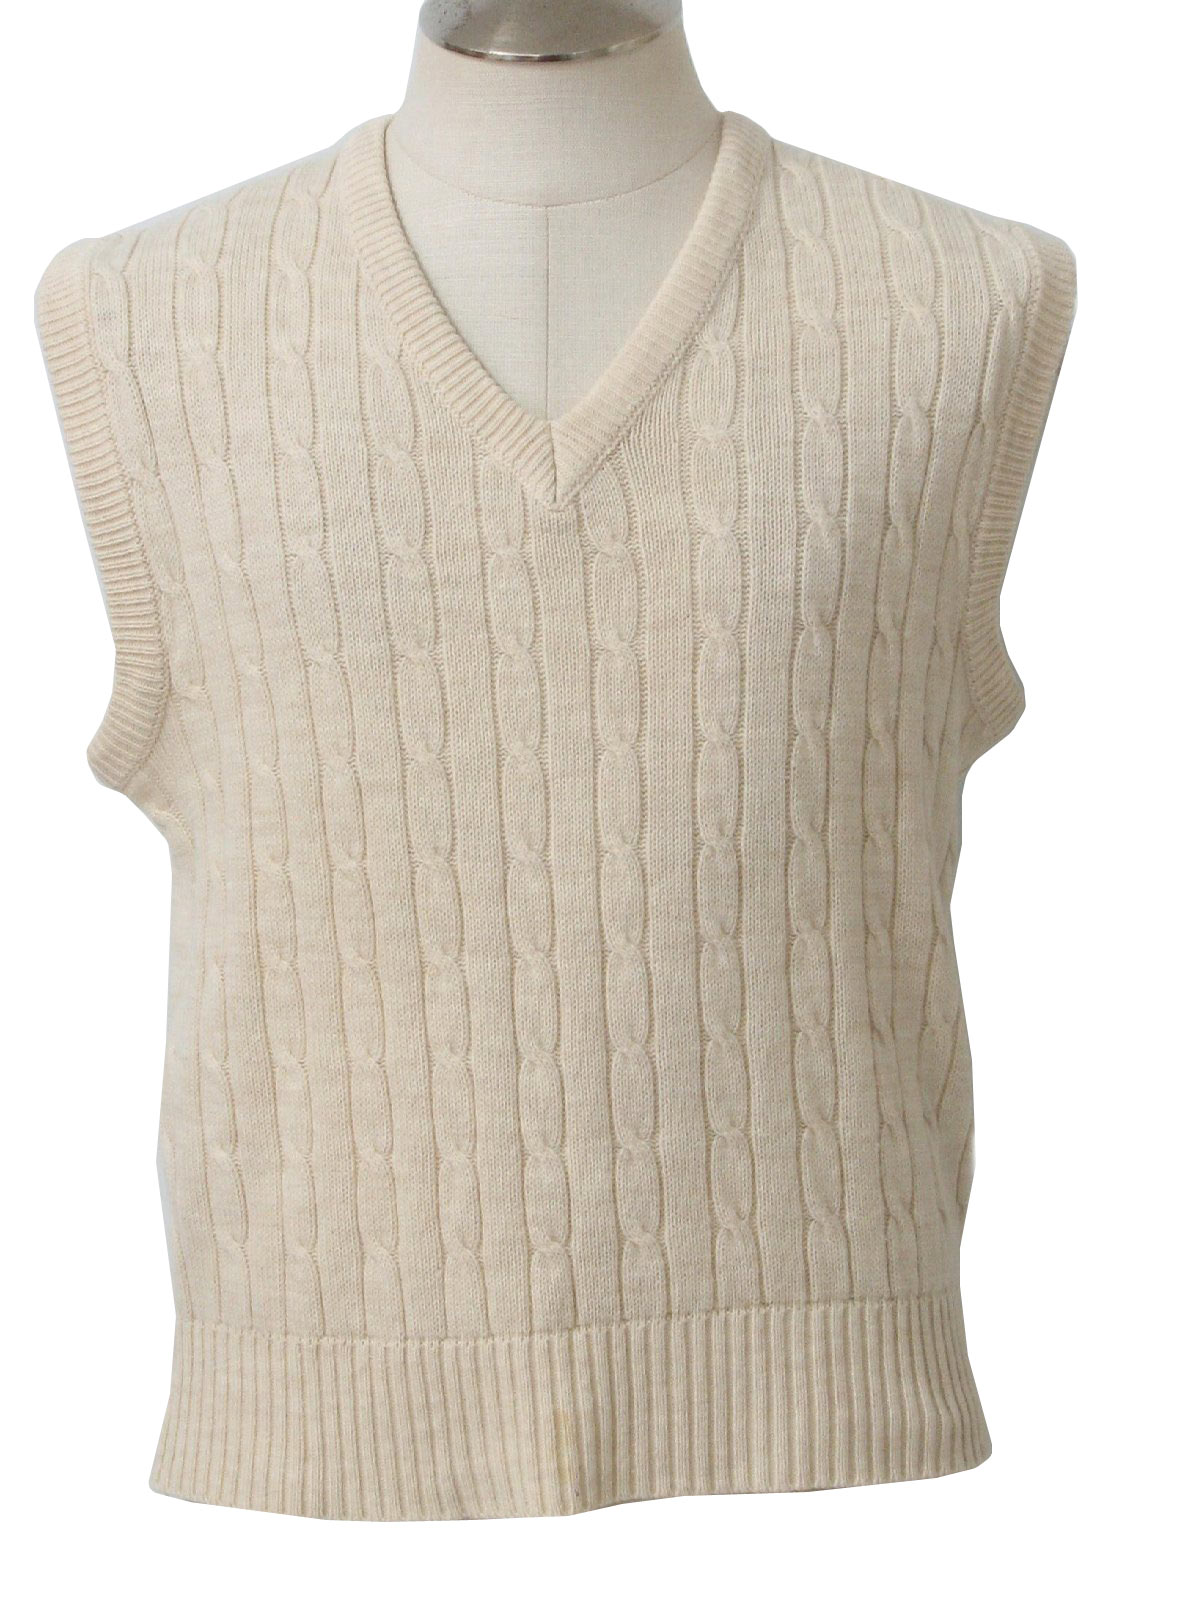 Mervyns Mens Collection 80's Vintage Sweater: Early 80s -Mervyns ...